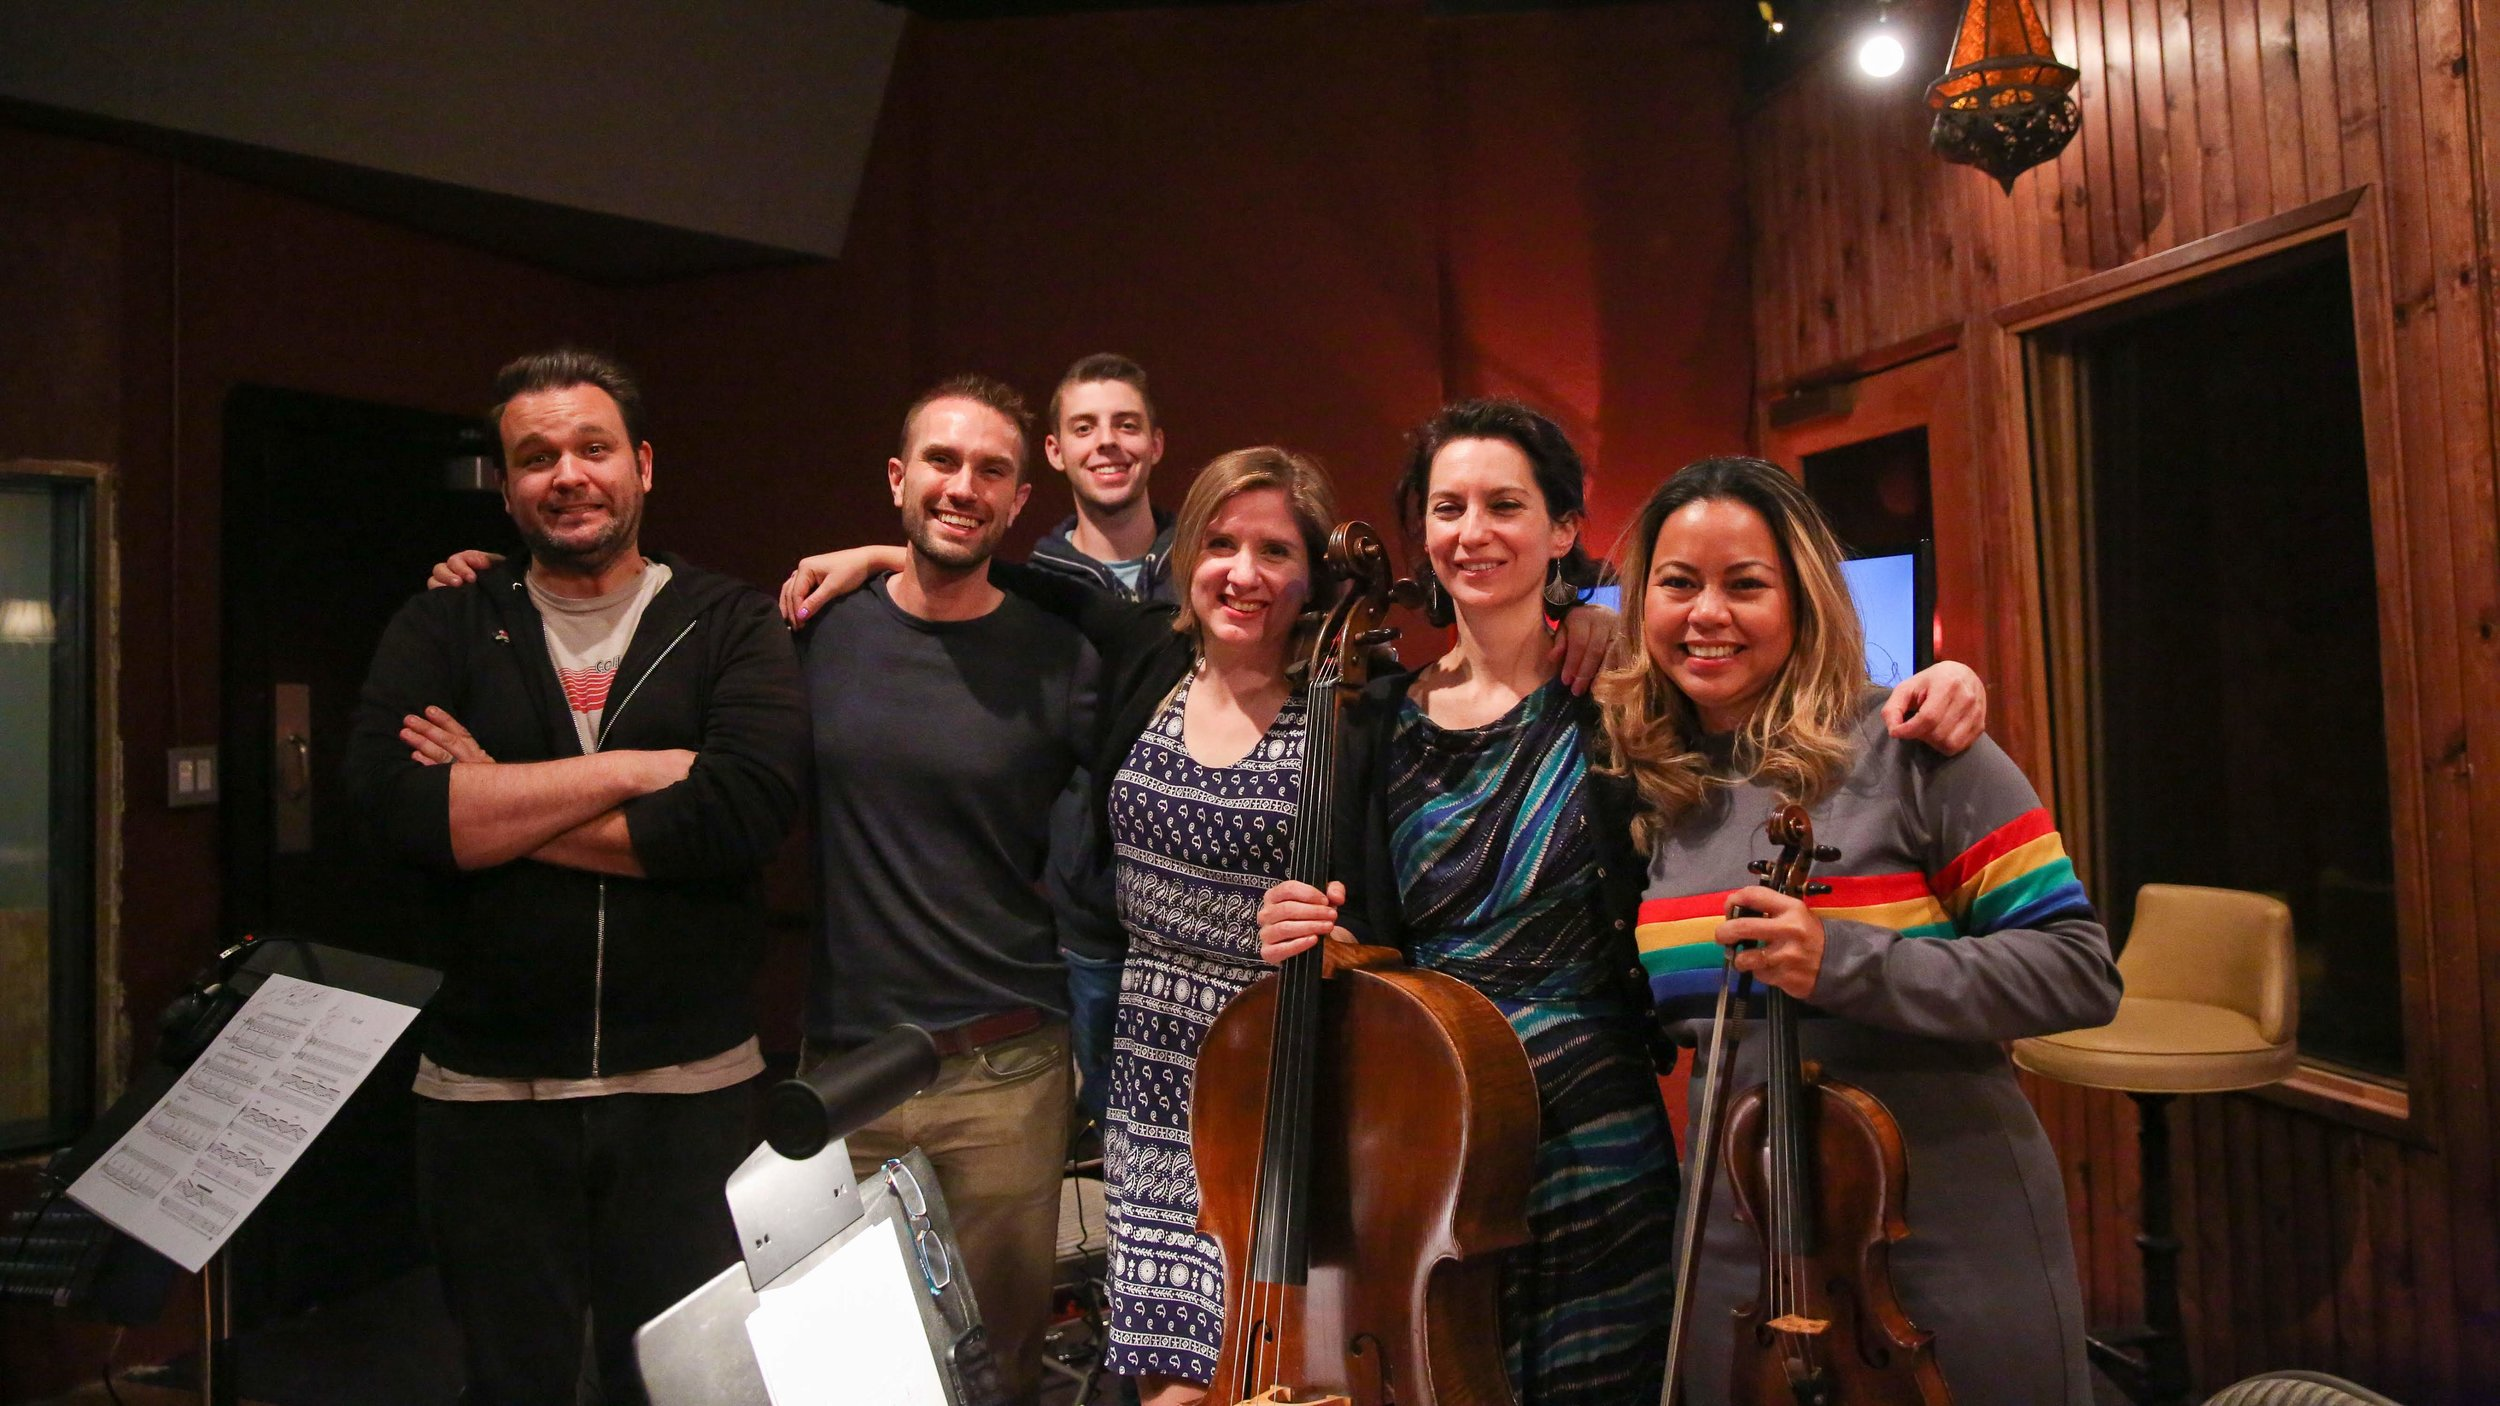 Our fantastic group from TLG Recording Session - Speakeasy Sound is such a great room!